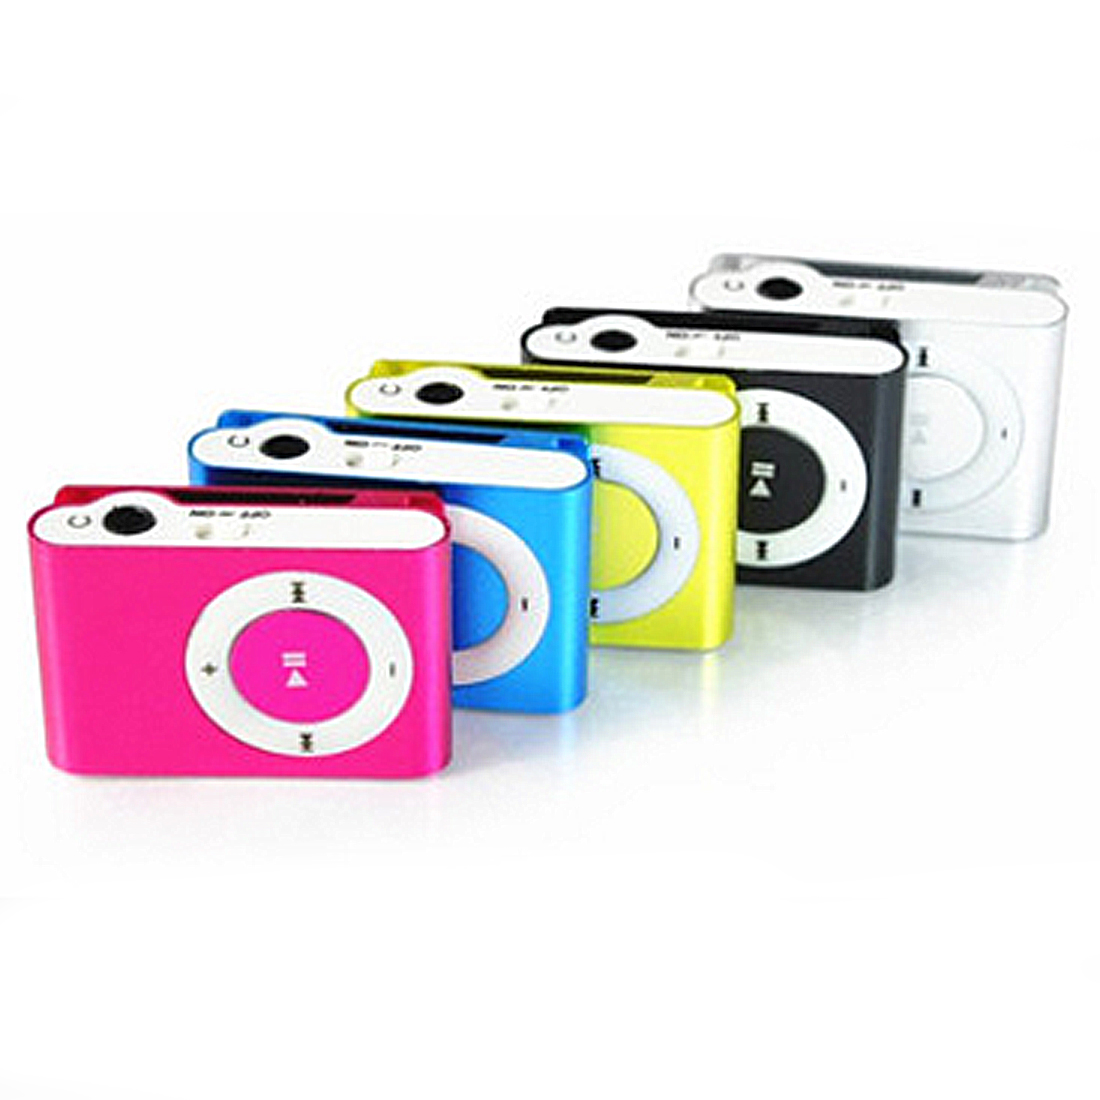 Aus Dem Ausland Importiert Neue Heiße Verkauf 8 Candy Farben Spiegel Tragbare Mp3 Player Mini Clip Mp3 Player Wasserdichte Sport Mp3 Musik Walkman Mit Tf Slot Hindernis Entfernen